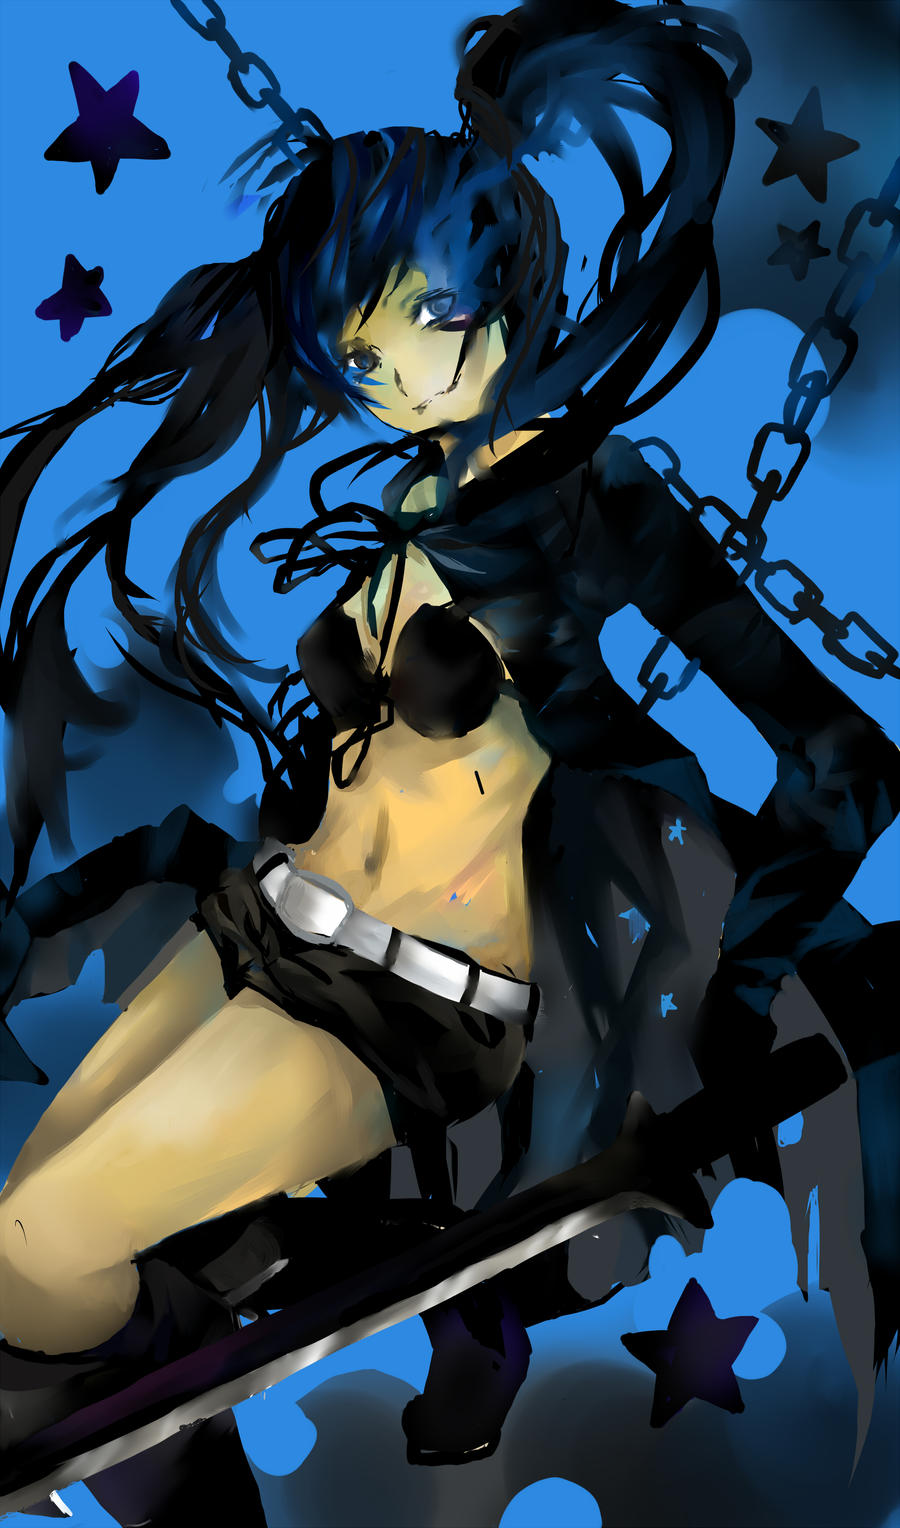 Black Rock Shooter by roflzombies